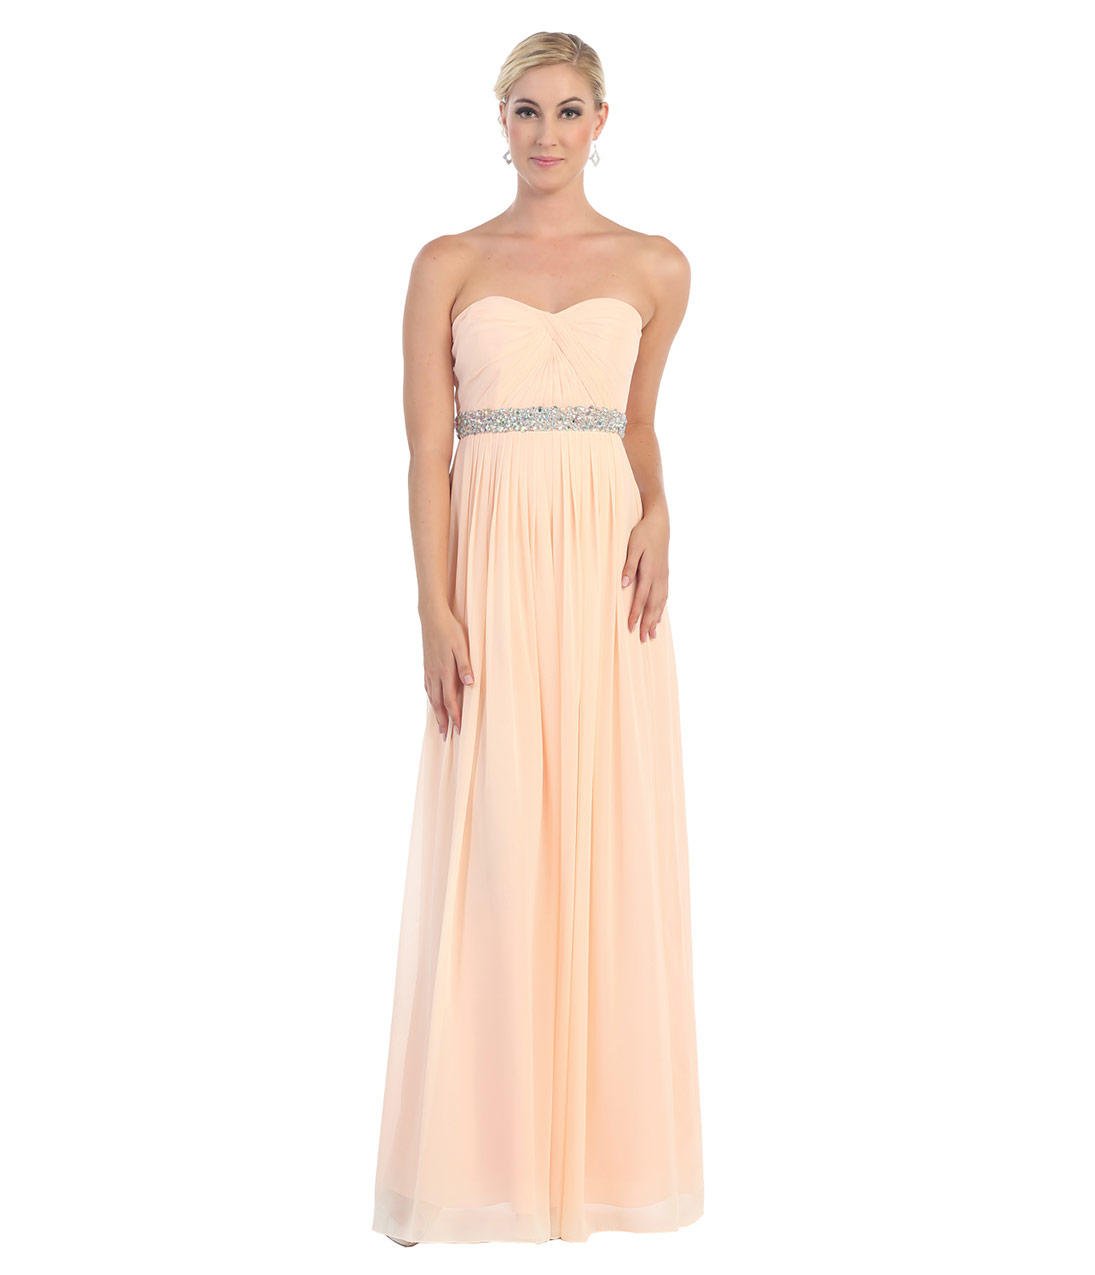 Room Decorating App Blush Pink Corset Back Gown From Unique Vintage Prom Hoco